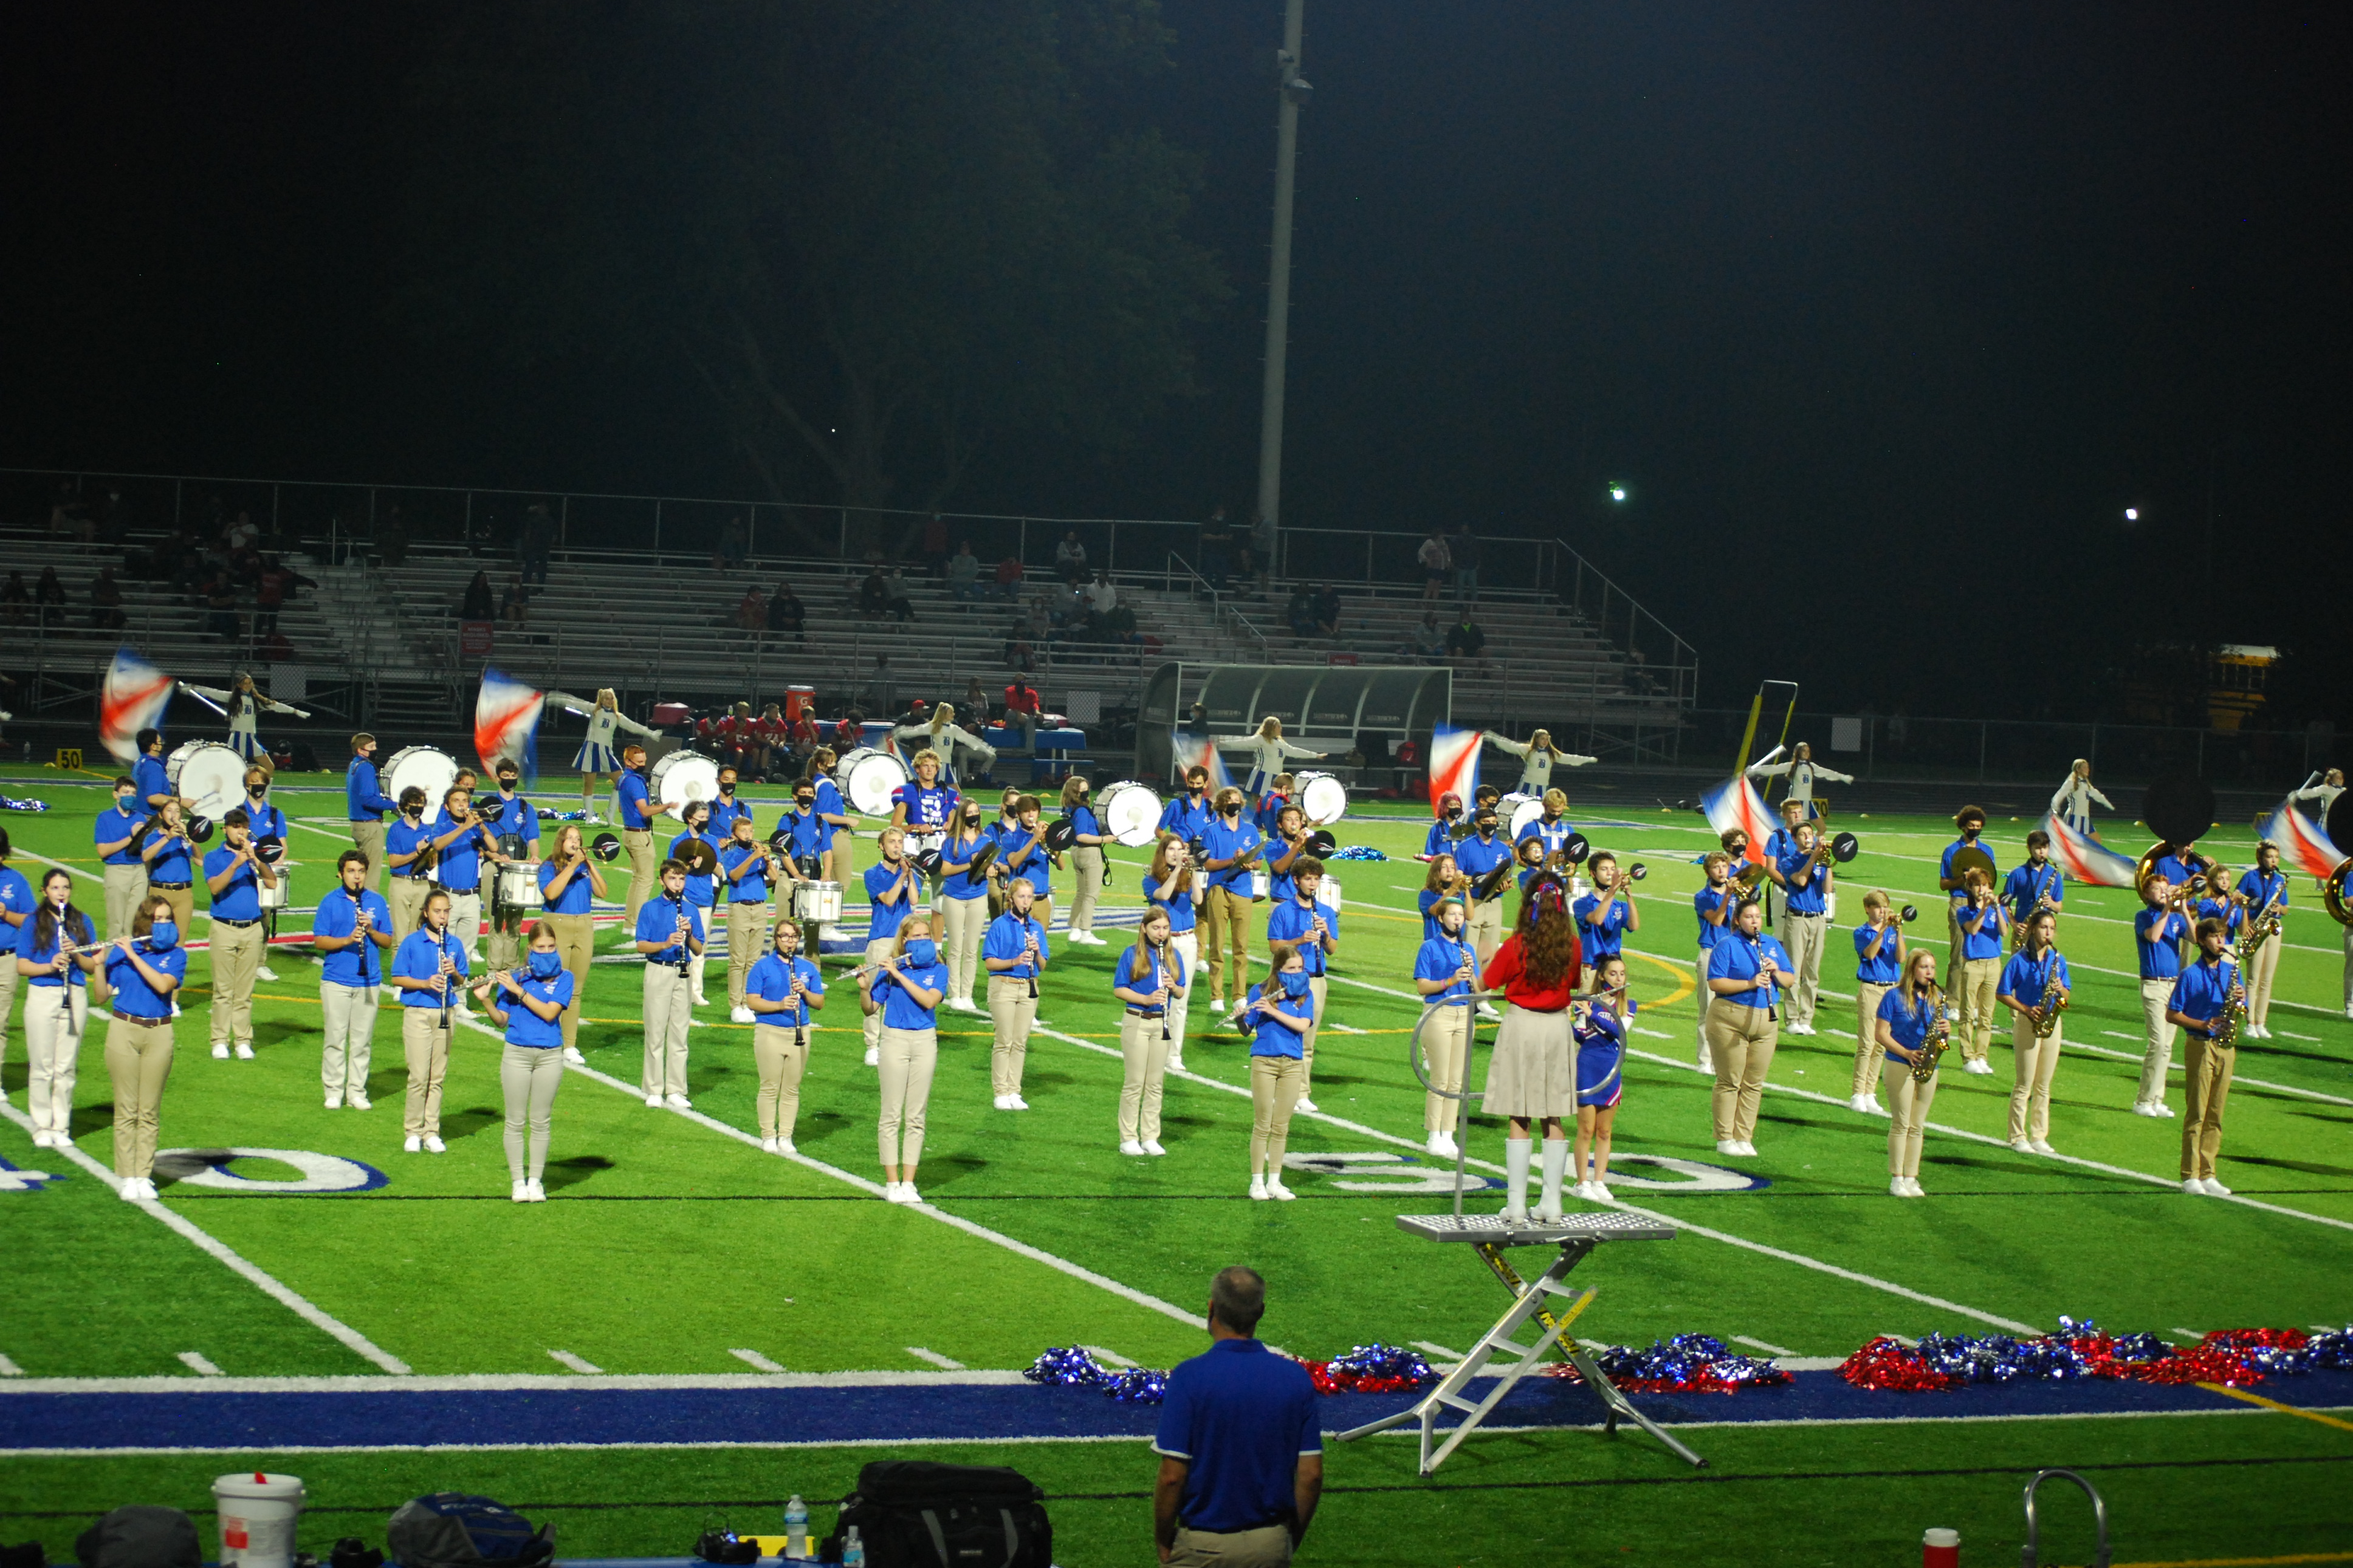 Marching Band on field